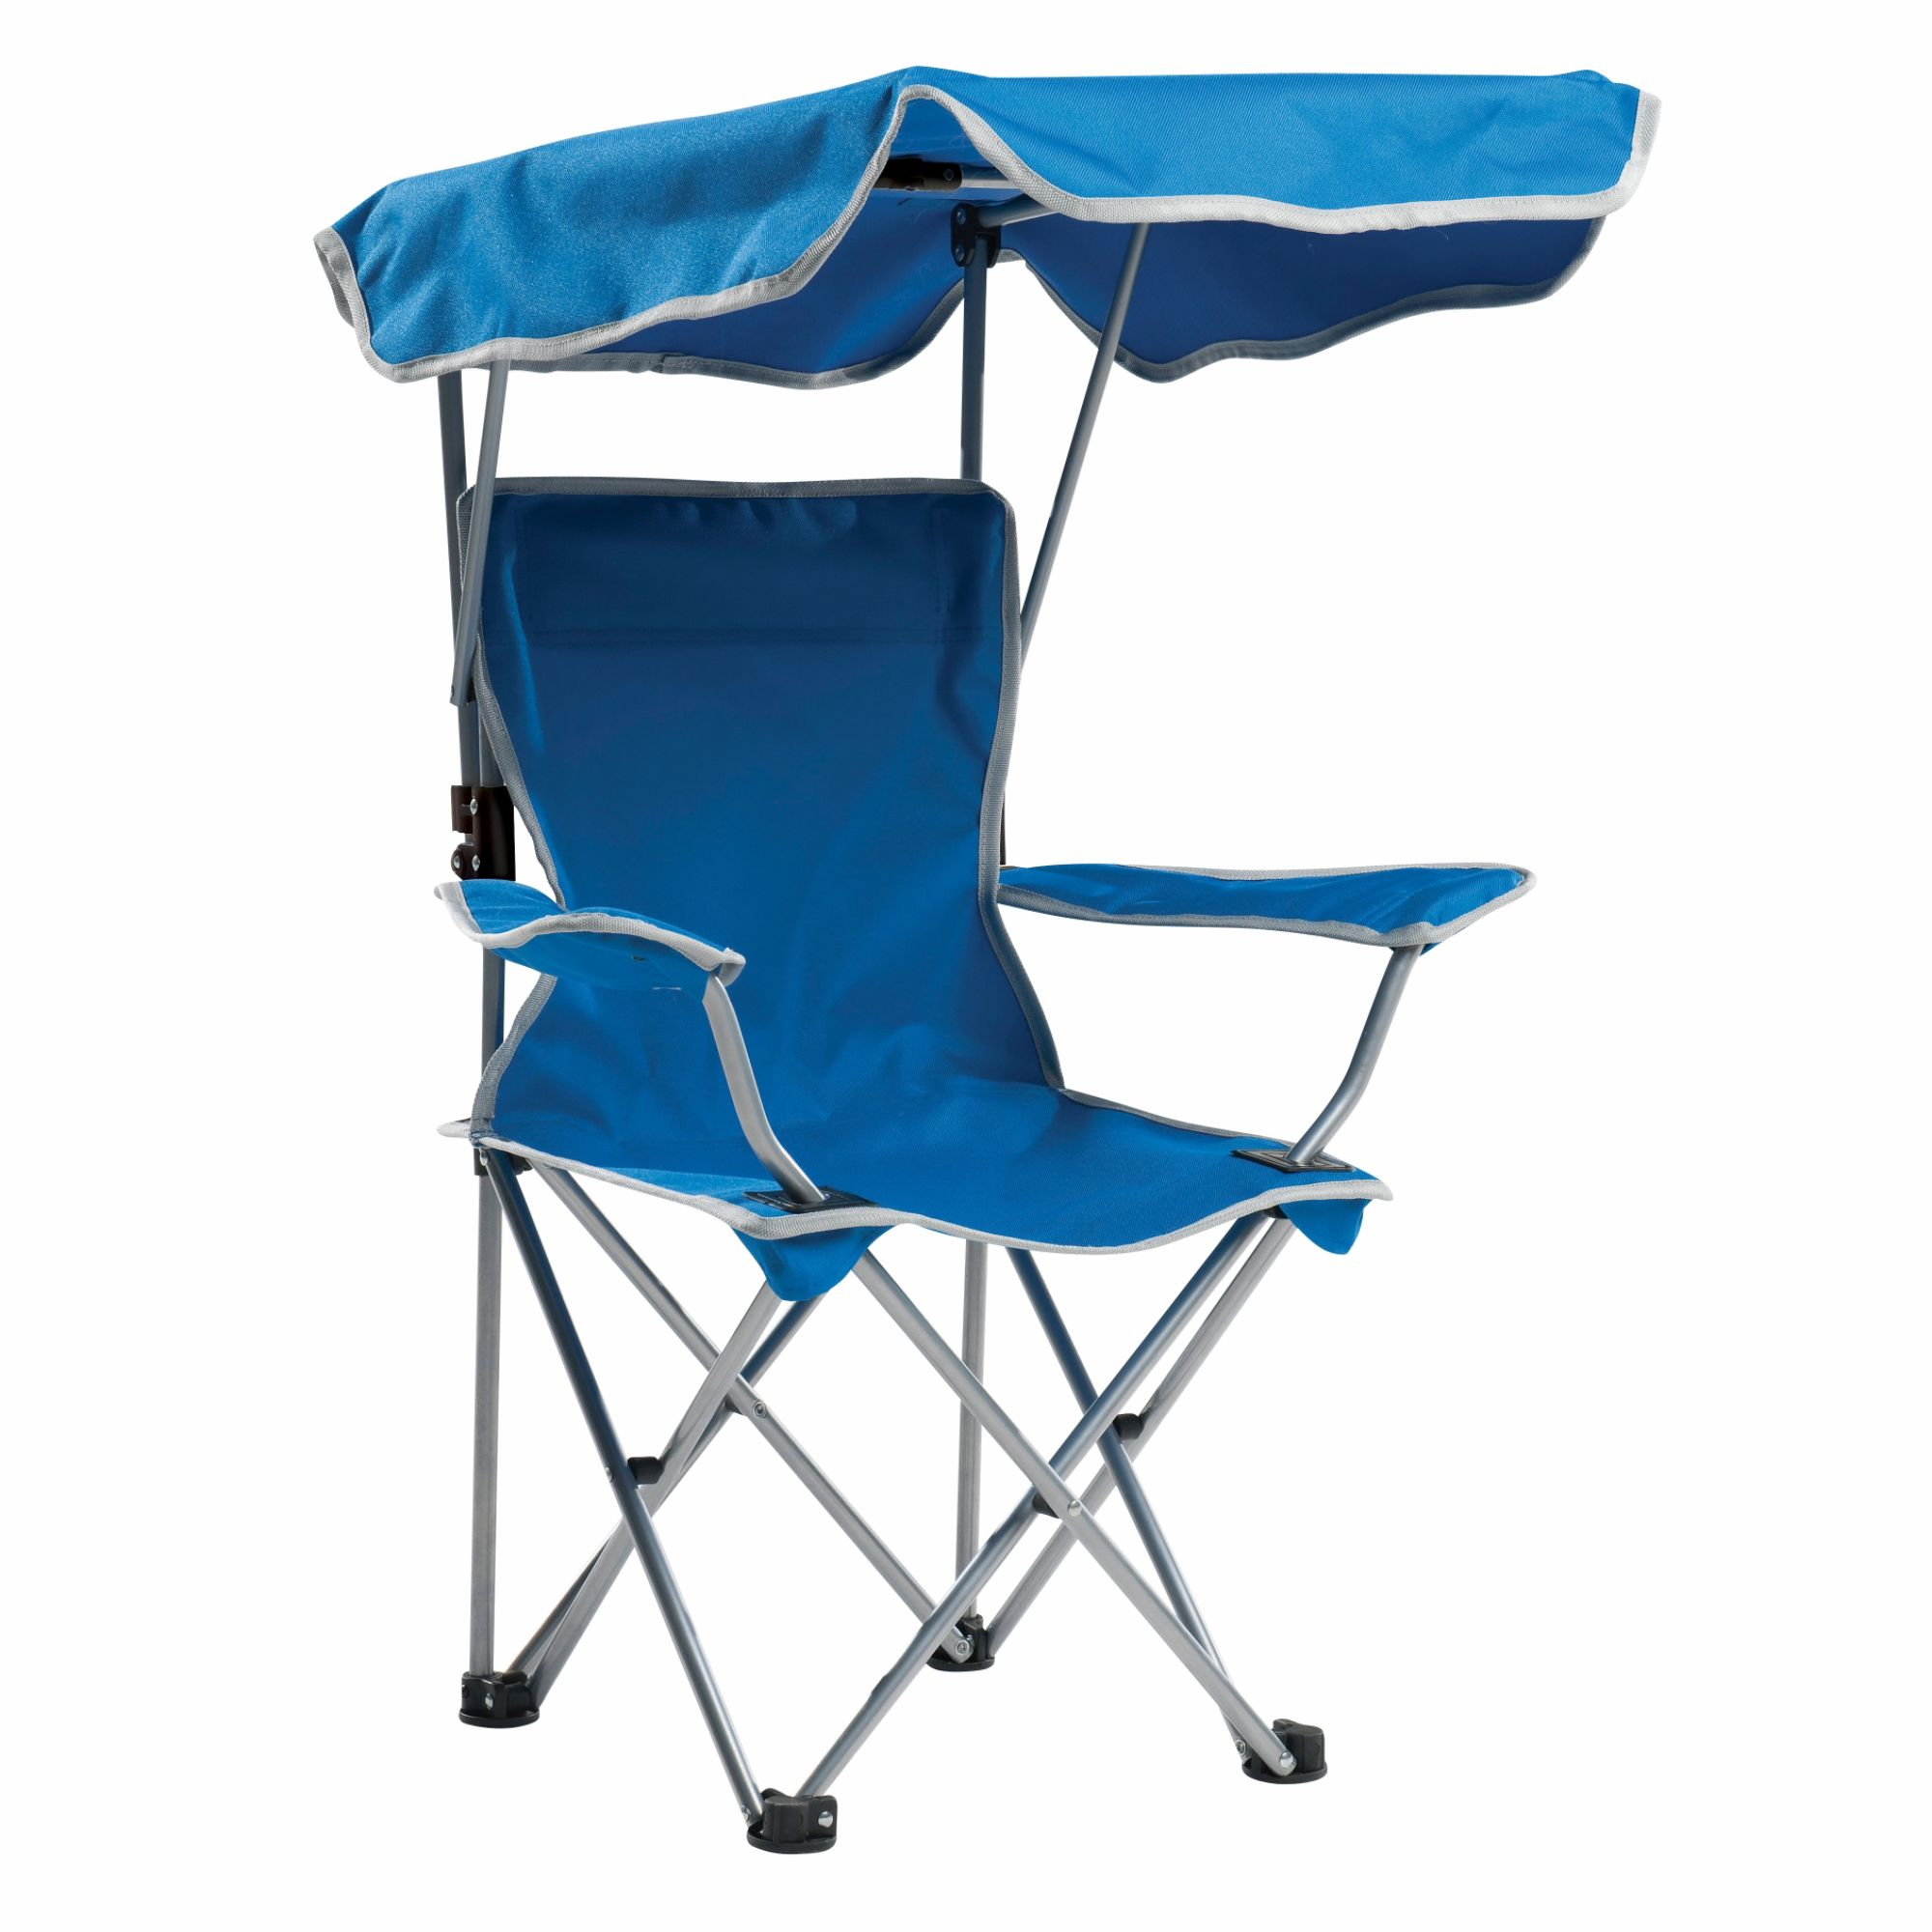 Camping Chairs With Canopy Northwest Territory Kid 39s Canopy Camping Chair Fitness